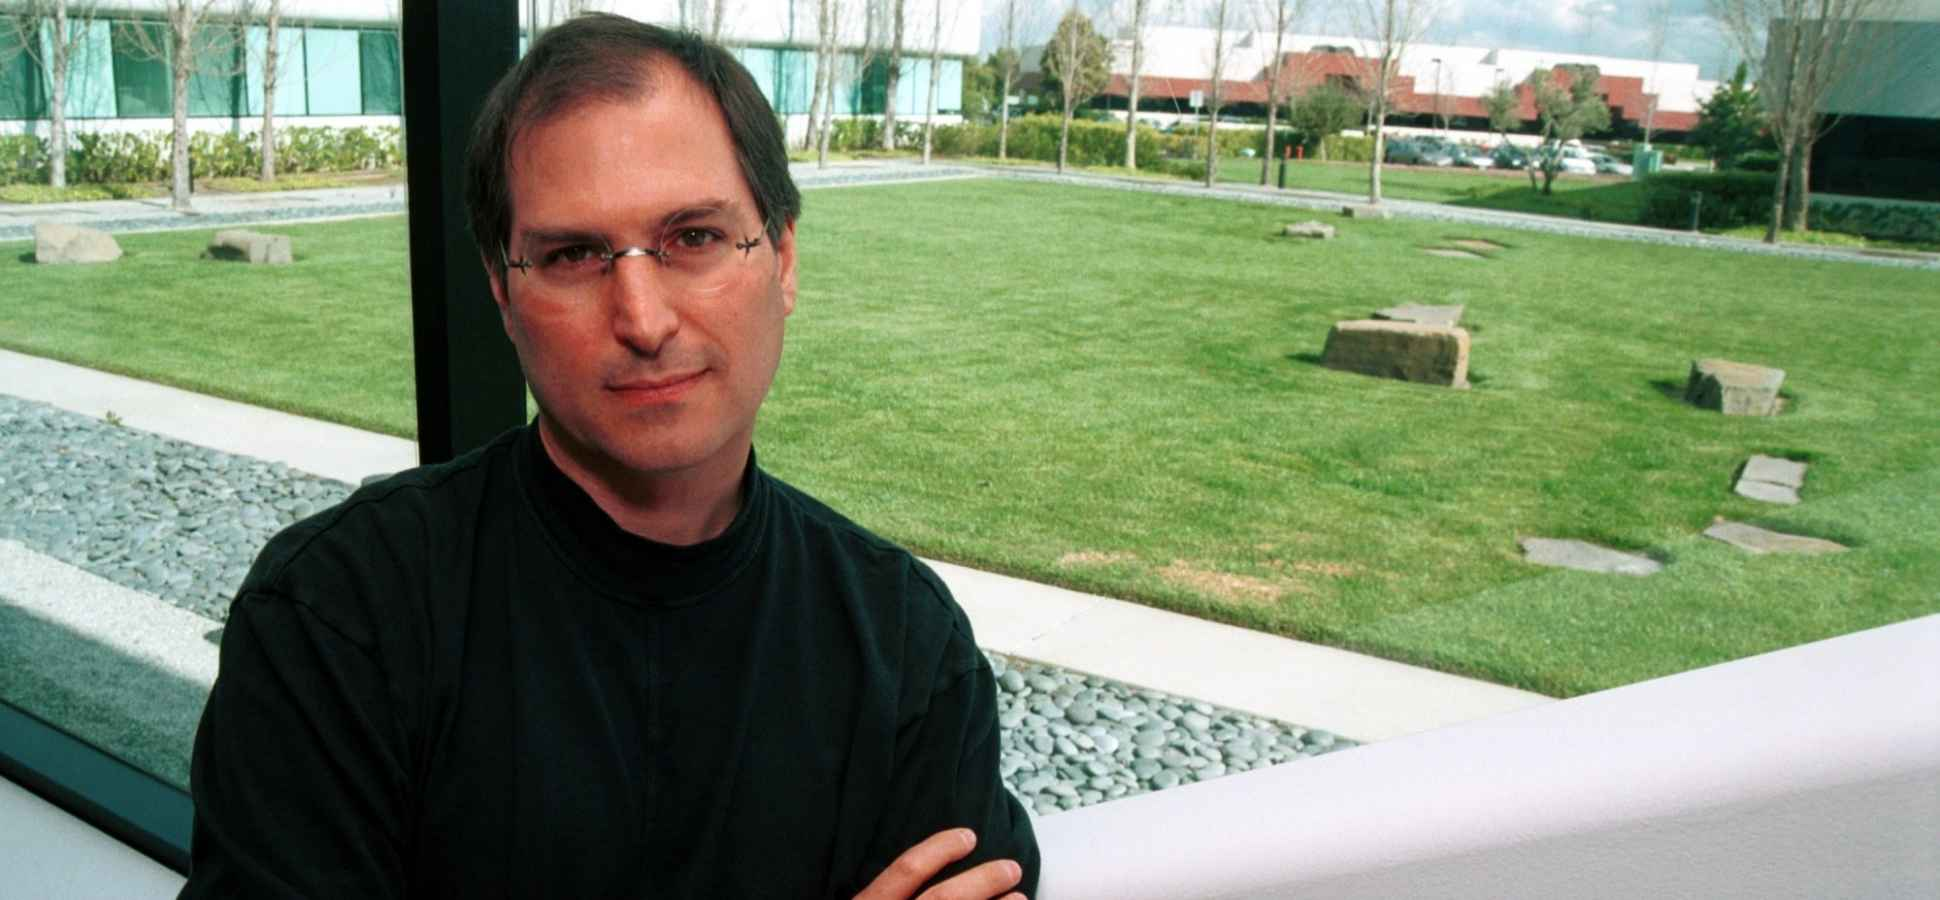 20 Years Ago, Steve Jobs Demonstrated the Perfect Way to Respond to